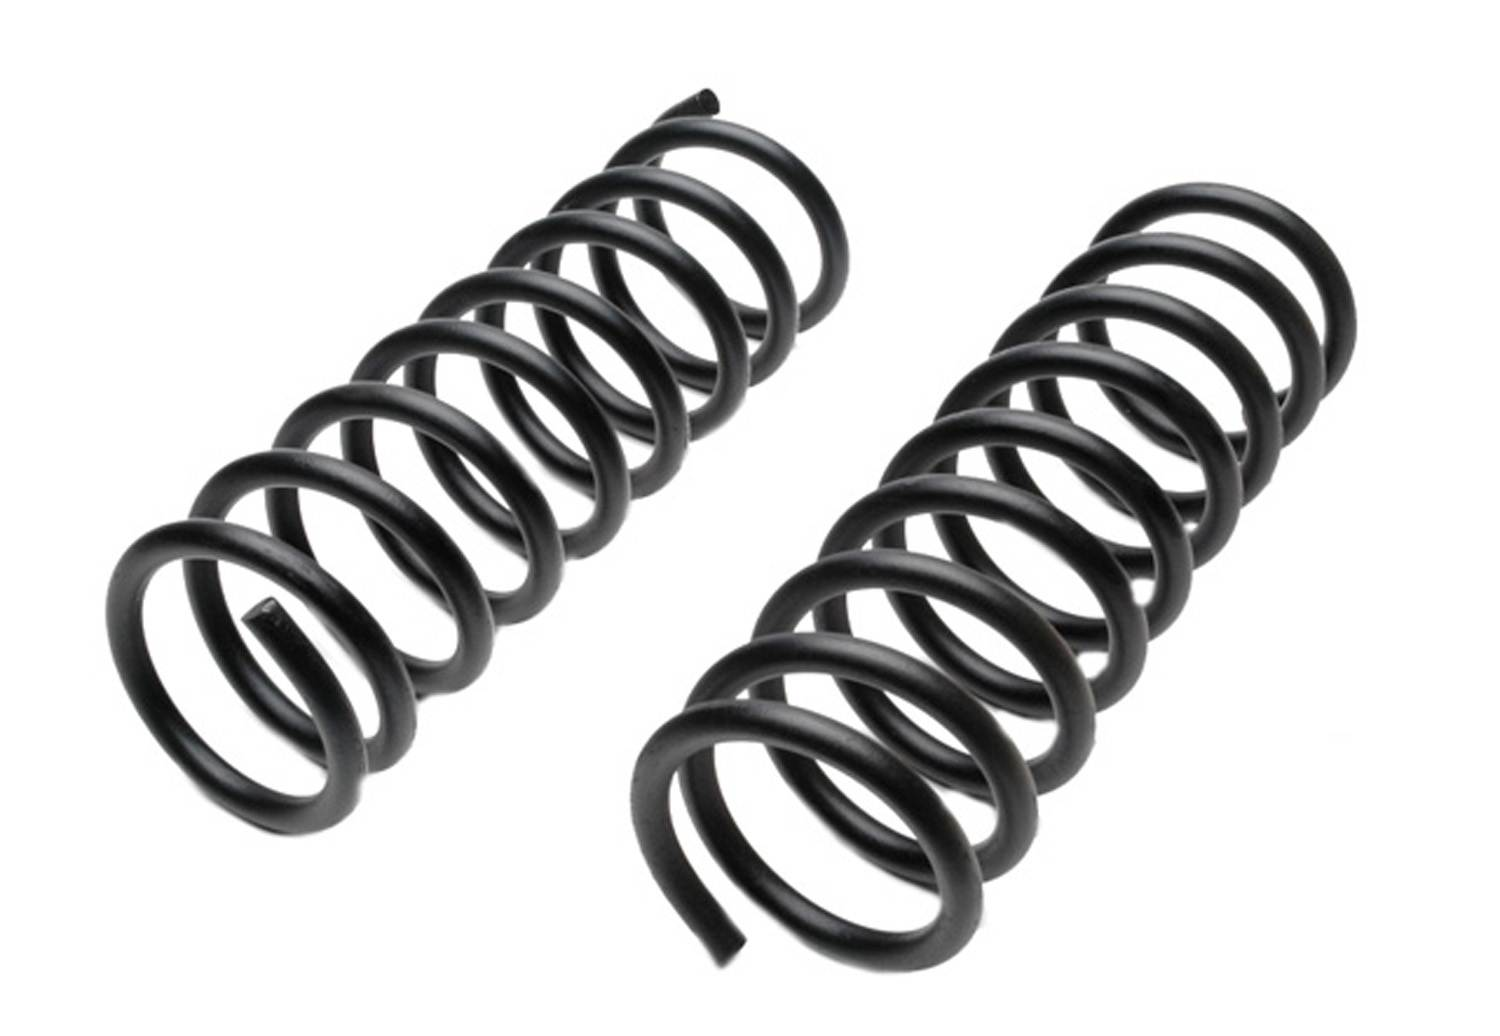 ACDELCO PROFESSIONAL - Coil Spring Set - DCC 45H0118